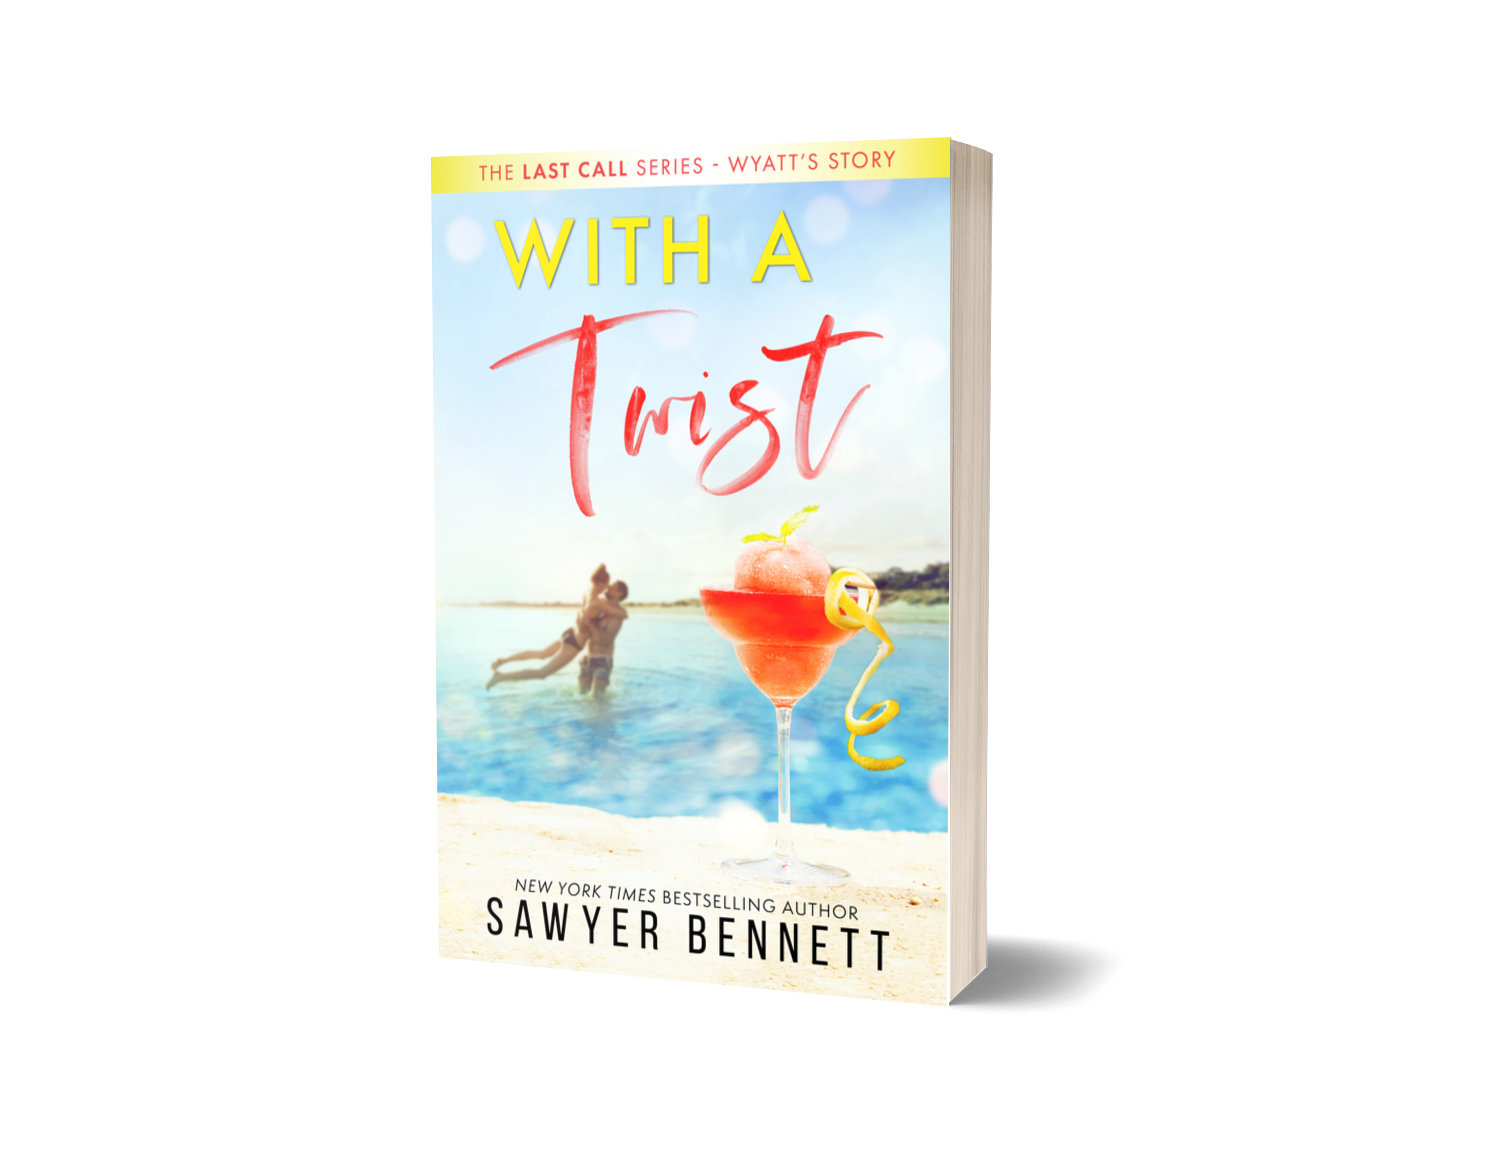 With a Twist - Signed Paperback